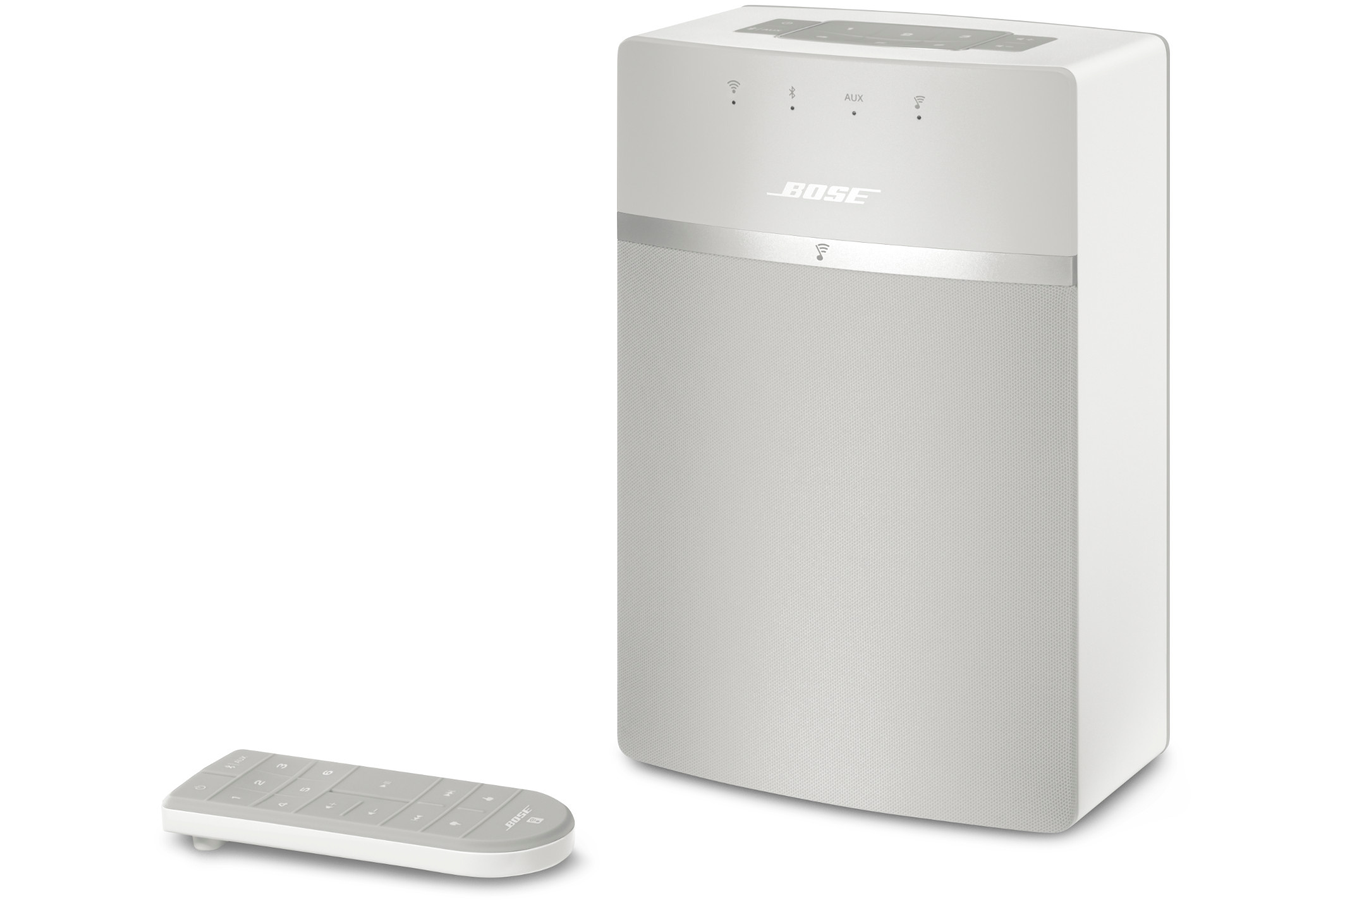 bose soundtouch 10. (img:http://image.darty.com/audio_mp3_mp4/enceinte_ipod_ipad_iphone_mp3/transmetteur_sans_fil/bose_soundtouch_10_white_k1509164143590a_095821742.jpg) bose soundtouch 10 t